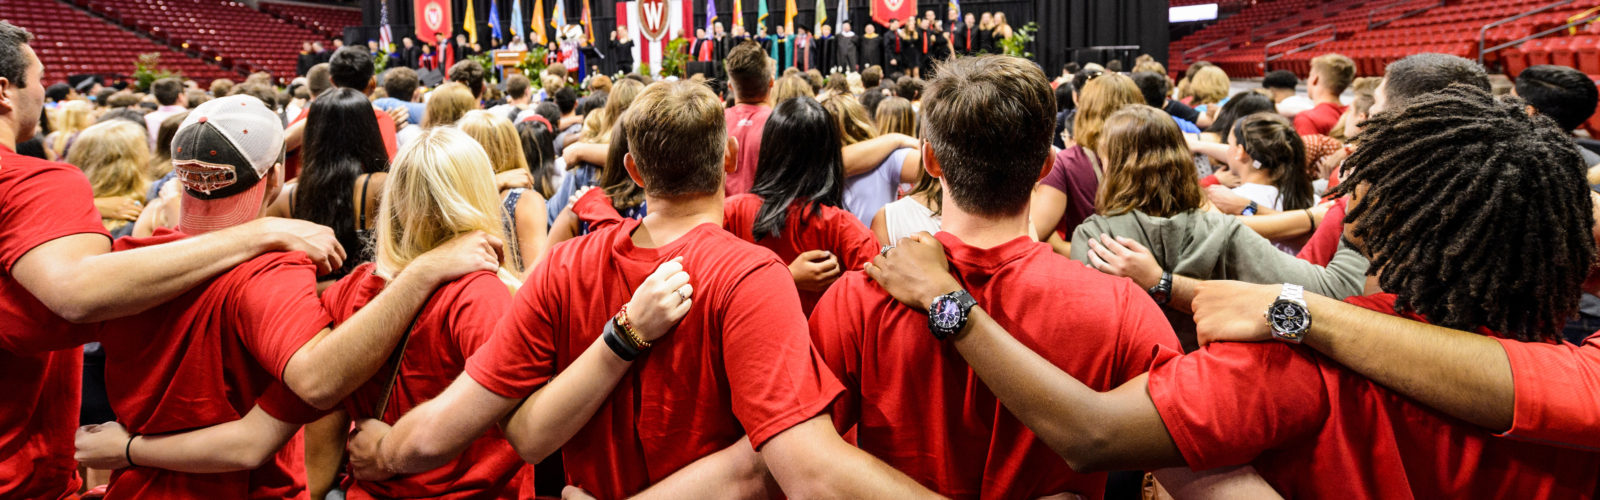 "First-year students link arms and sing ""Varsity"" at the end of the Chancellor's Convocation for New Students, a Wisconsin Welcome event held at the Kohl Center at the University of Wisconsin-Madison on Sept. 2, 2016. (Photo by Jeff Miller/UW-Madison)"